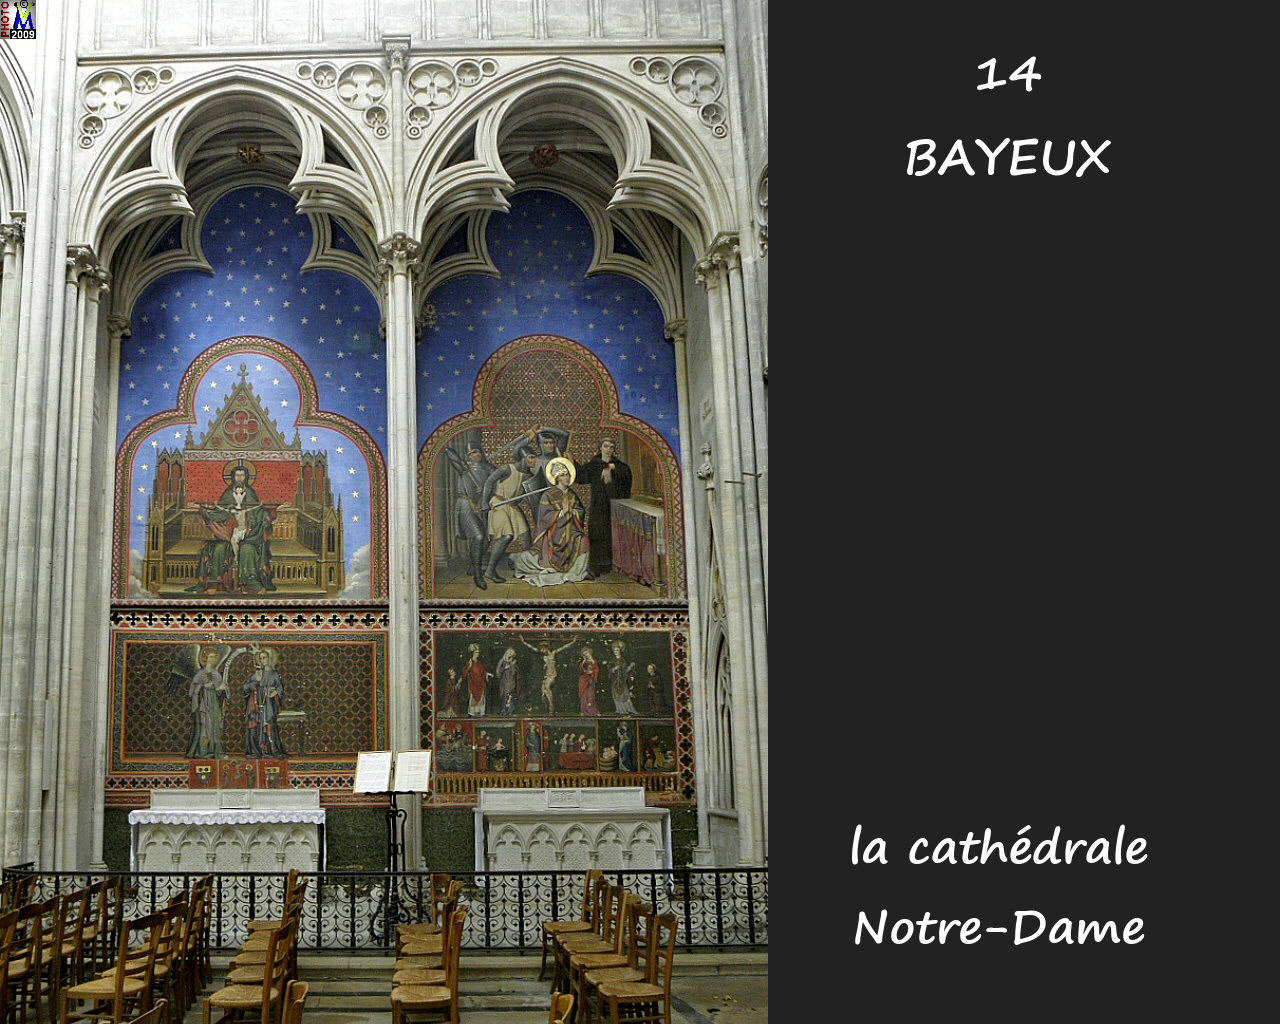 14BAYEUX_cathedrale_236.jpg